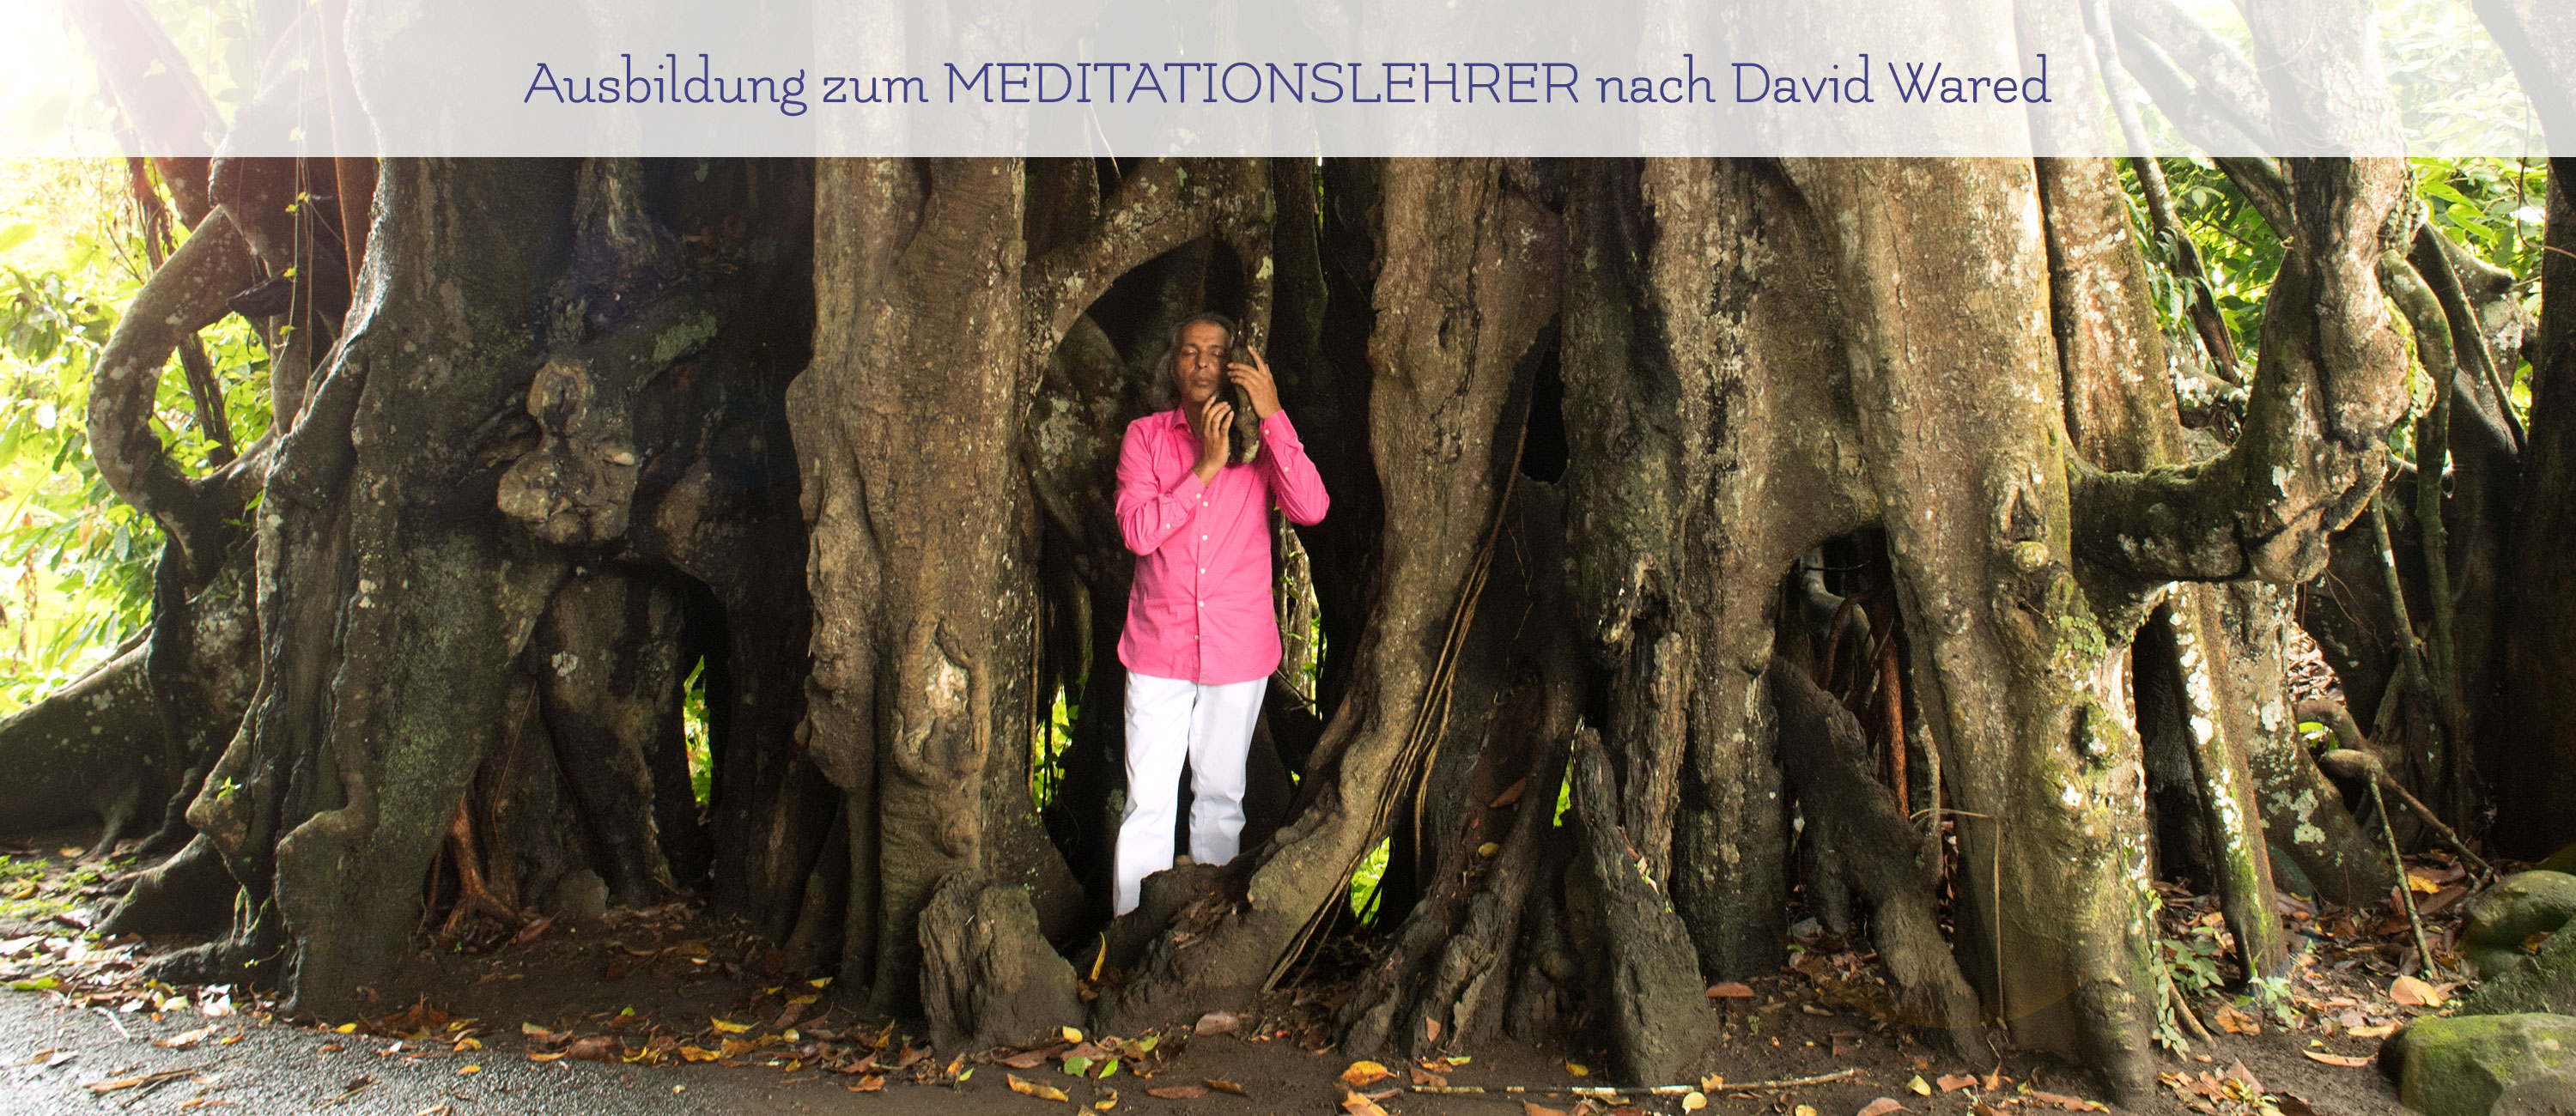 Meditation nach David Wared